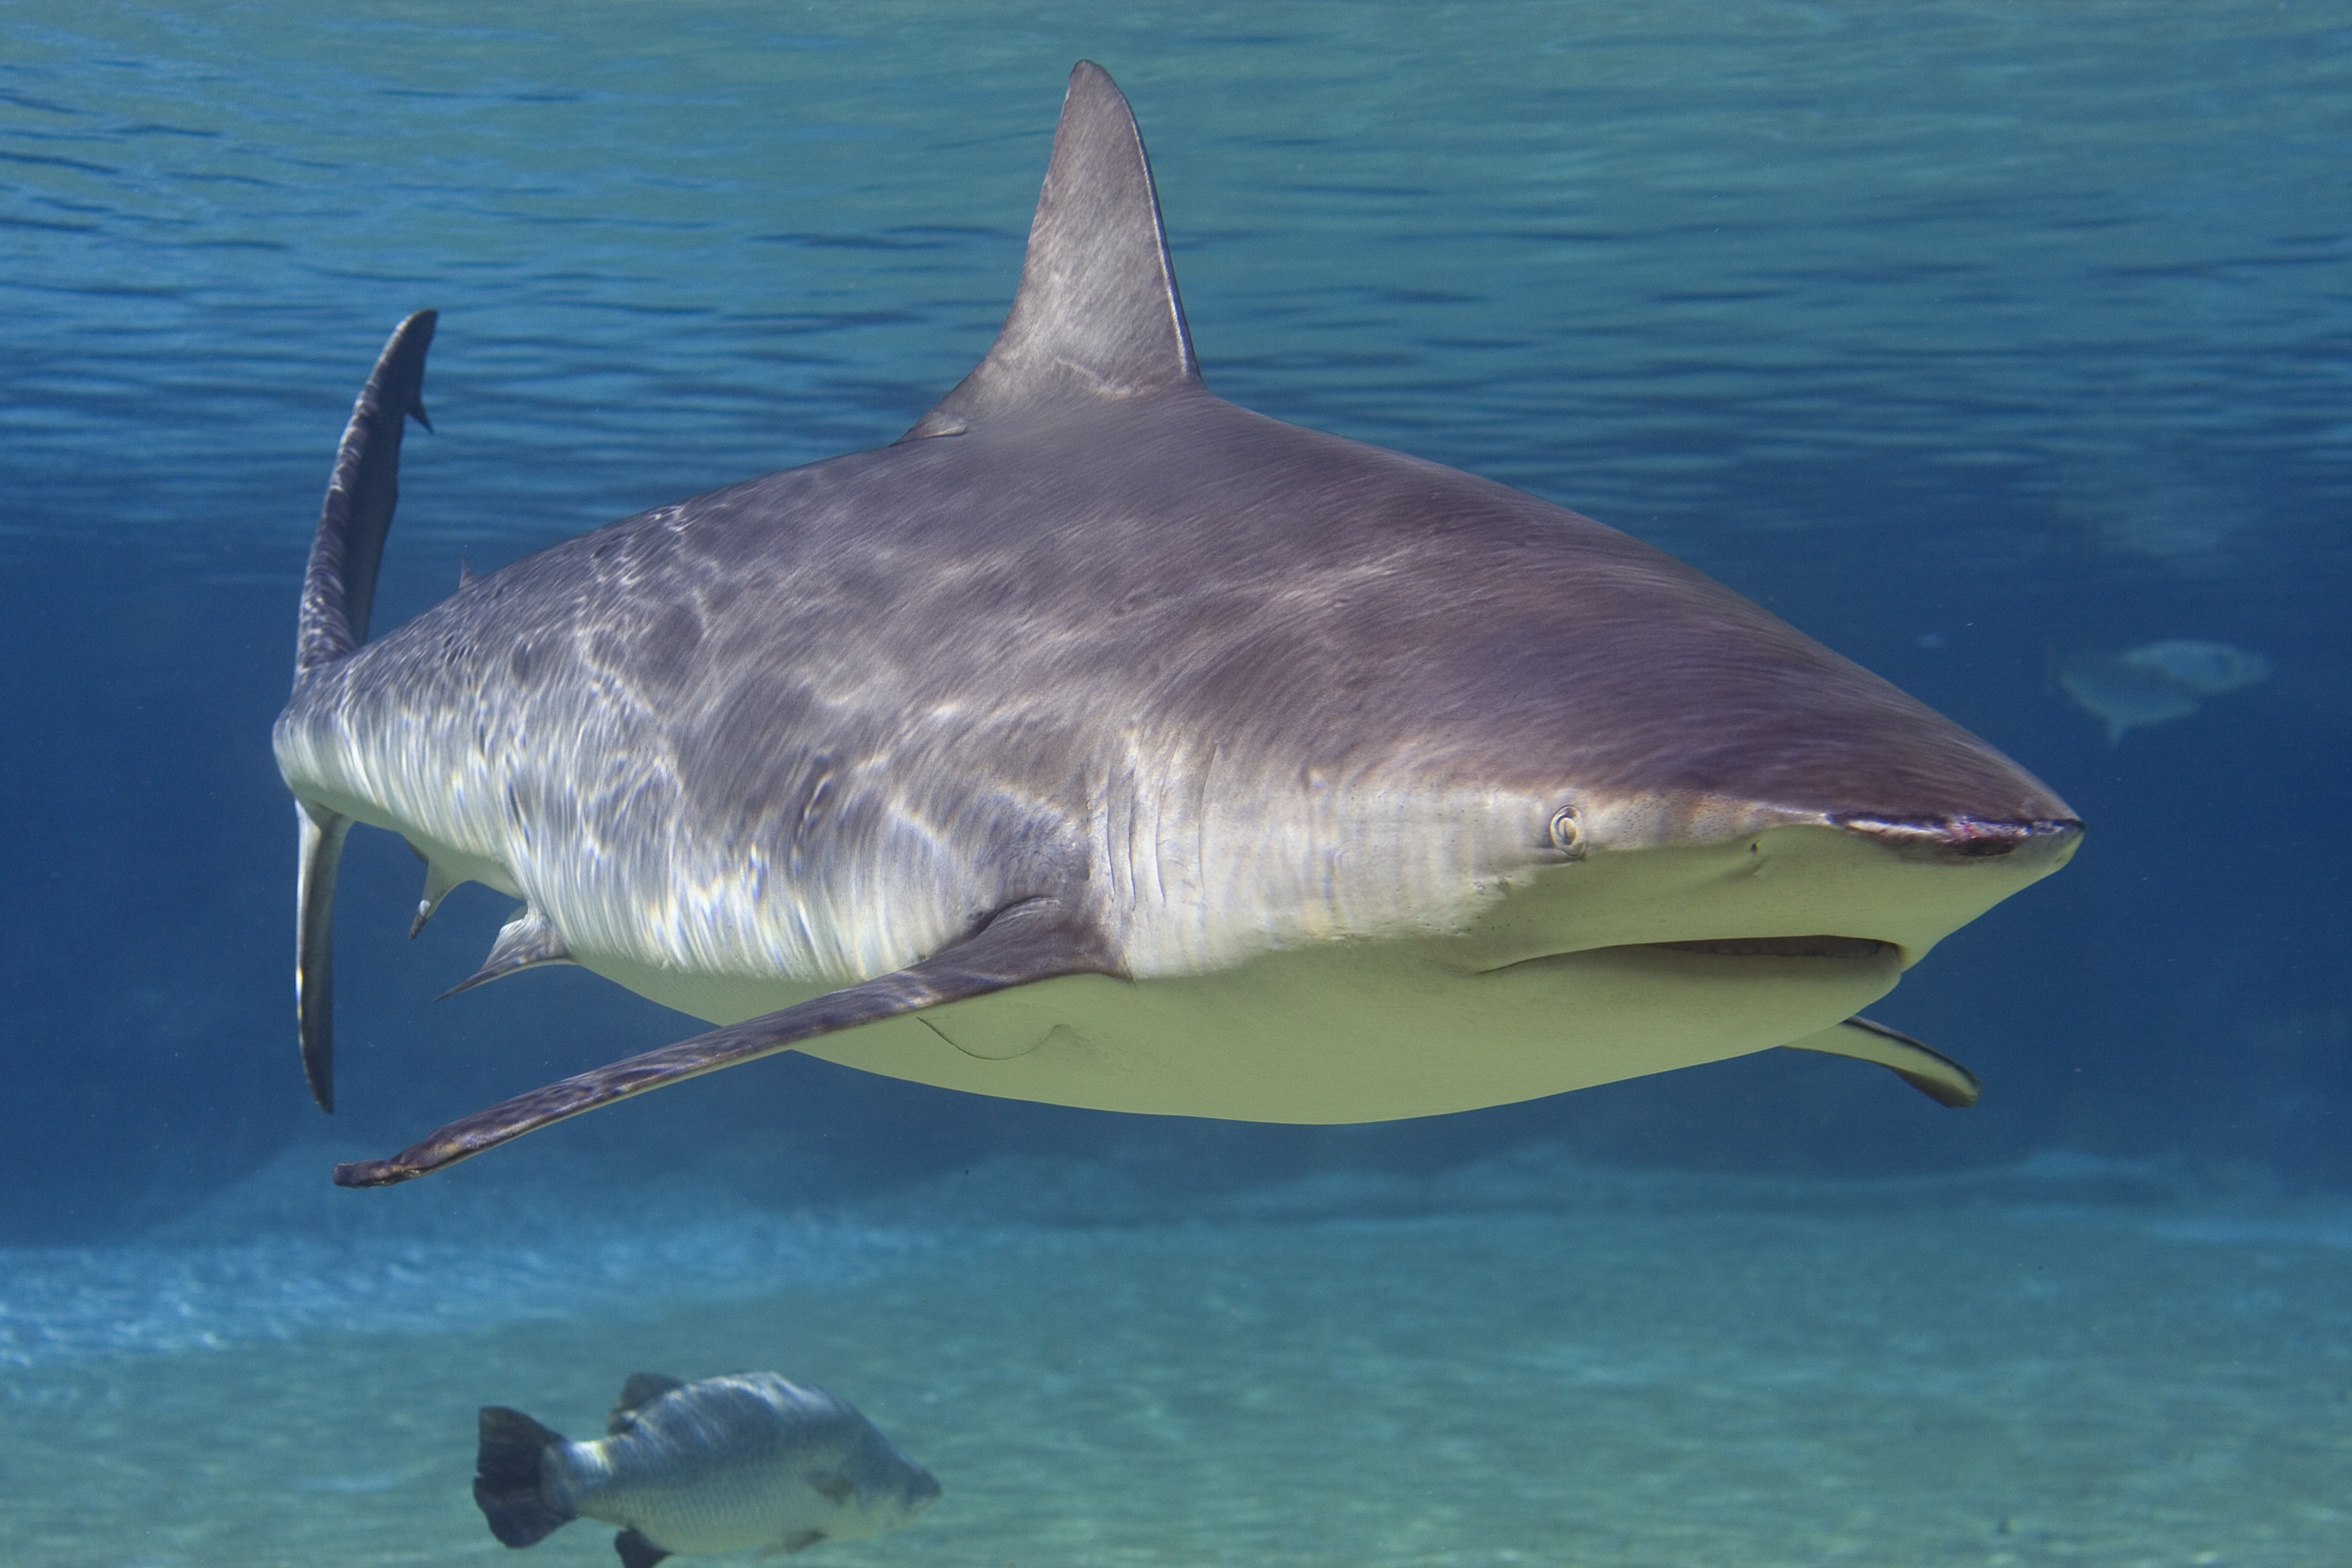 Florida is the shark attack capital of the world, again